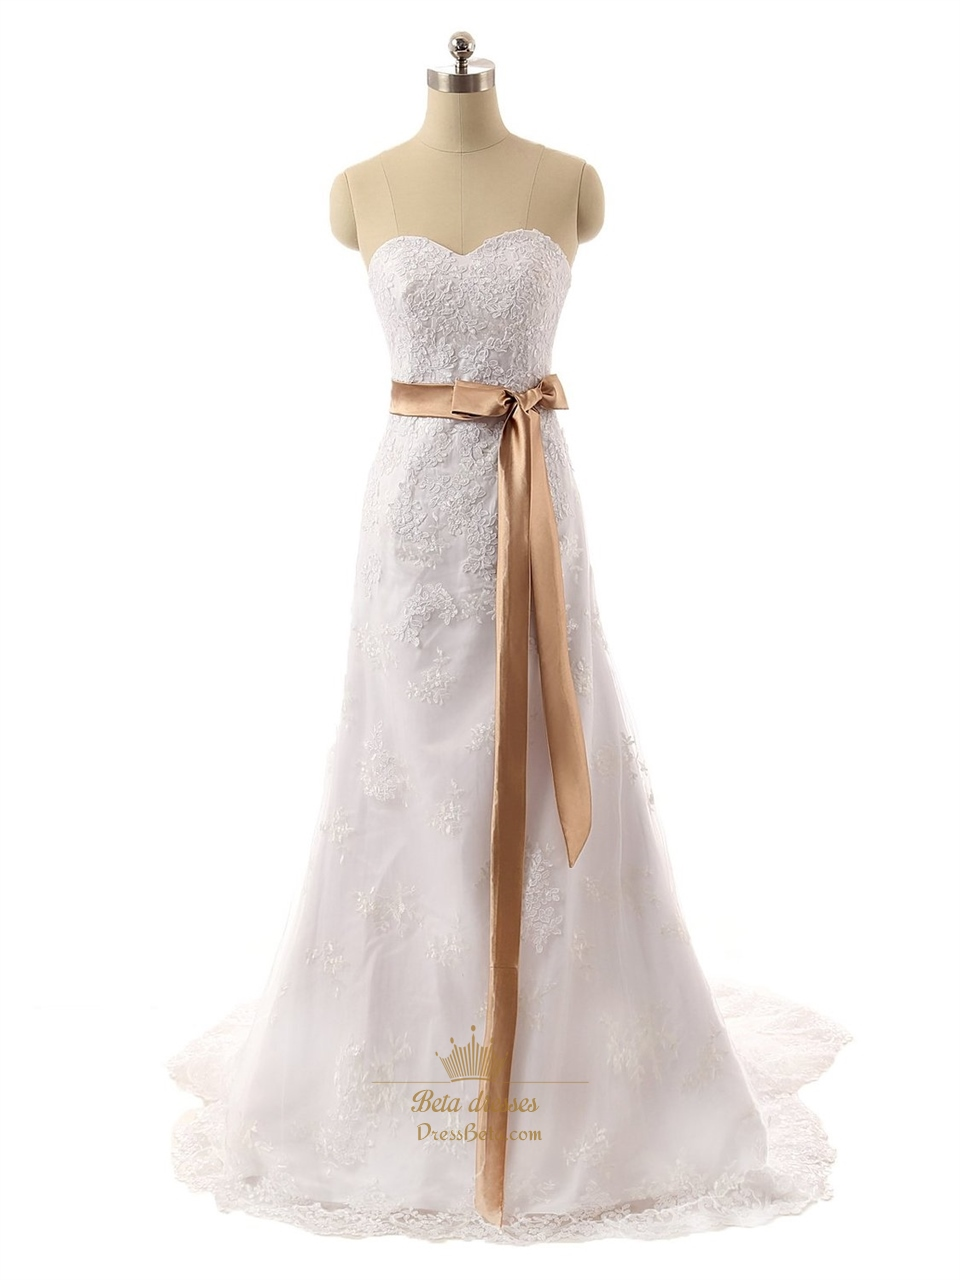 White Strapless Sweetheart Floral Applique Wedding Dress